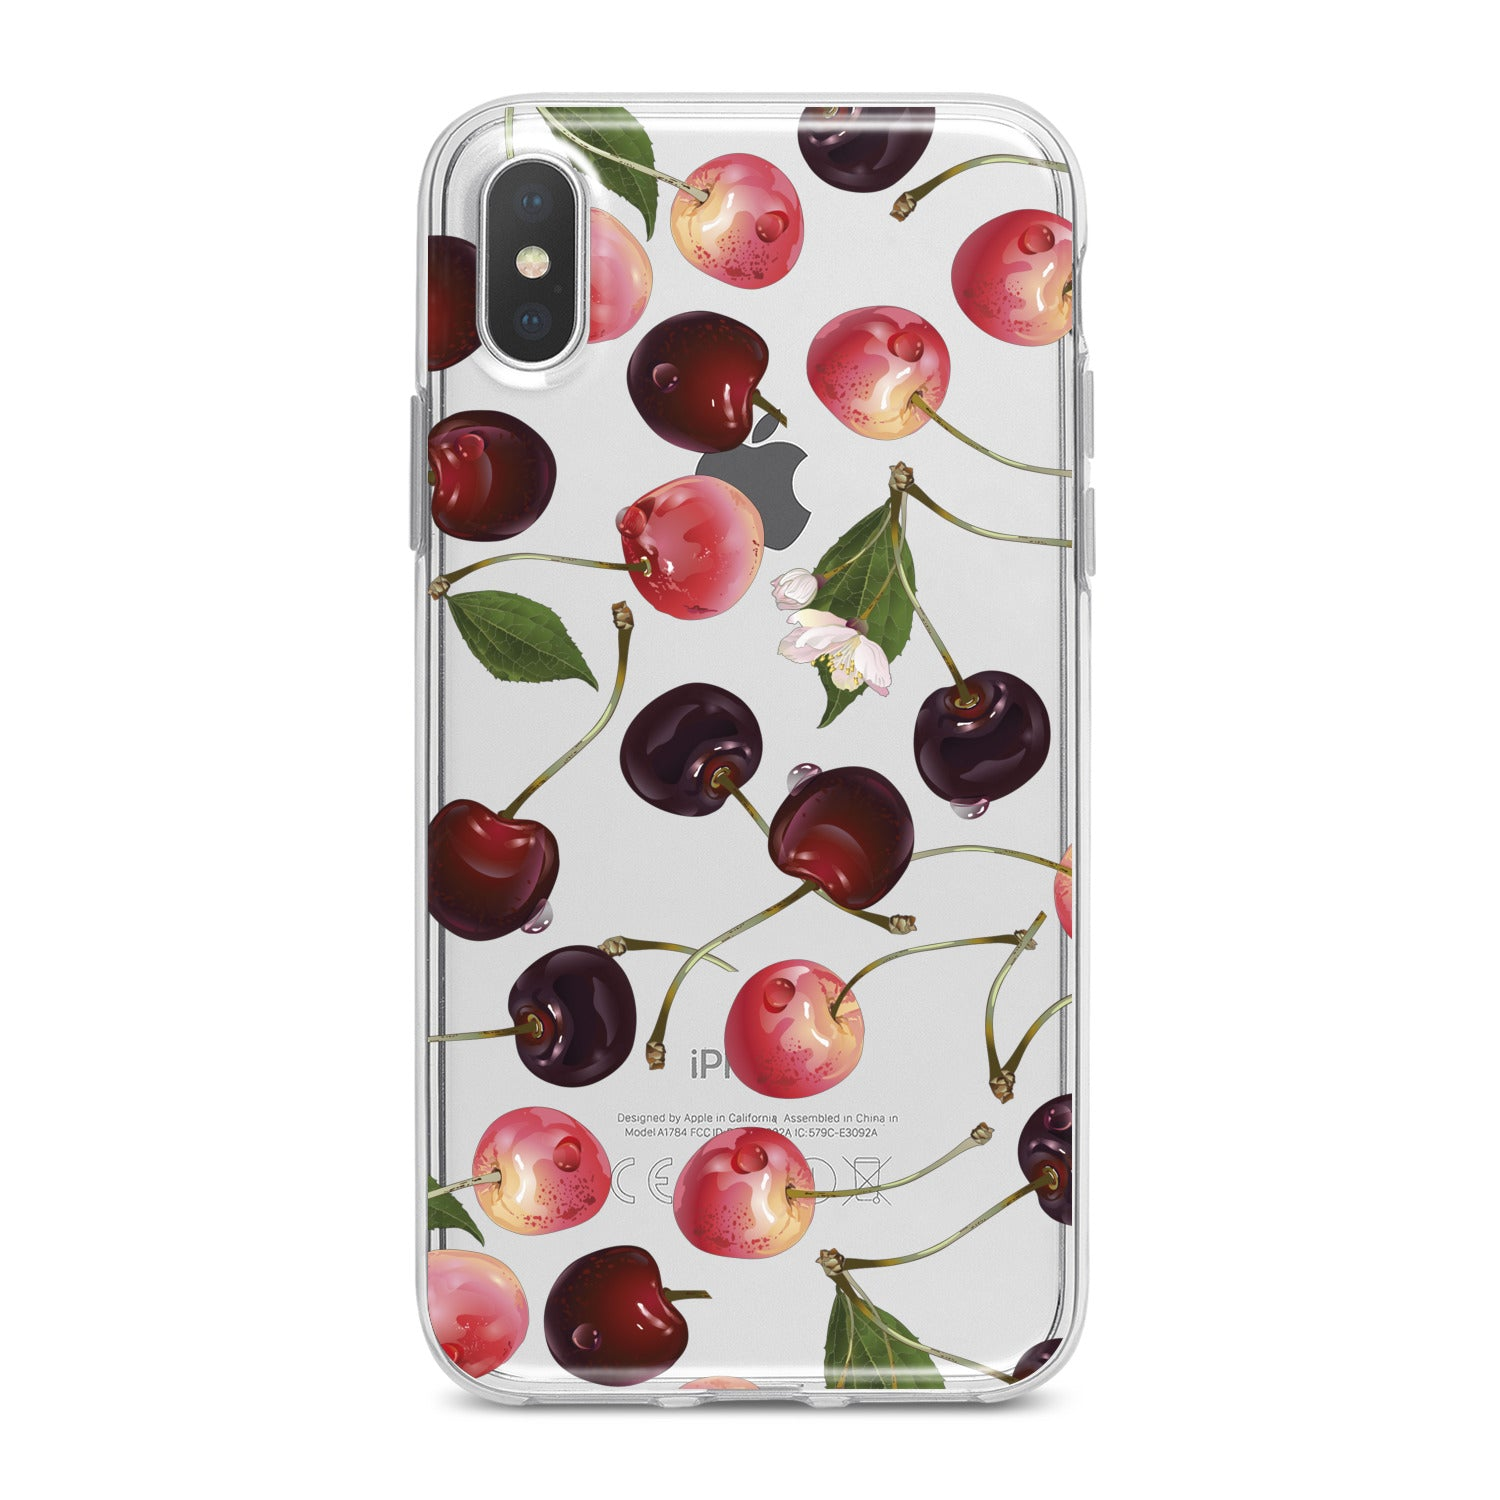 Lex Altern Sweet Cherries Phone Case for your iPhone & Android phone.